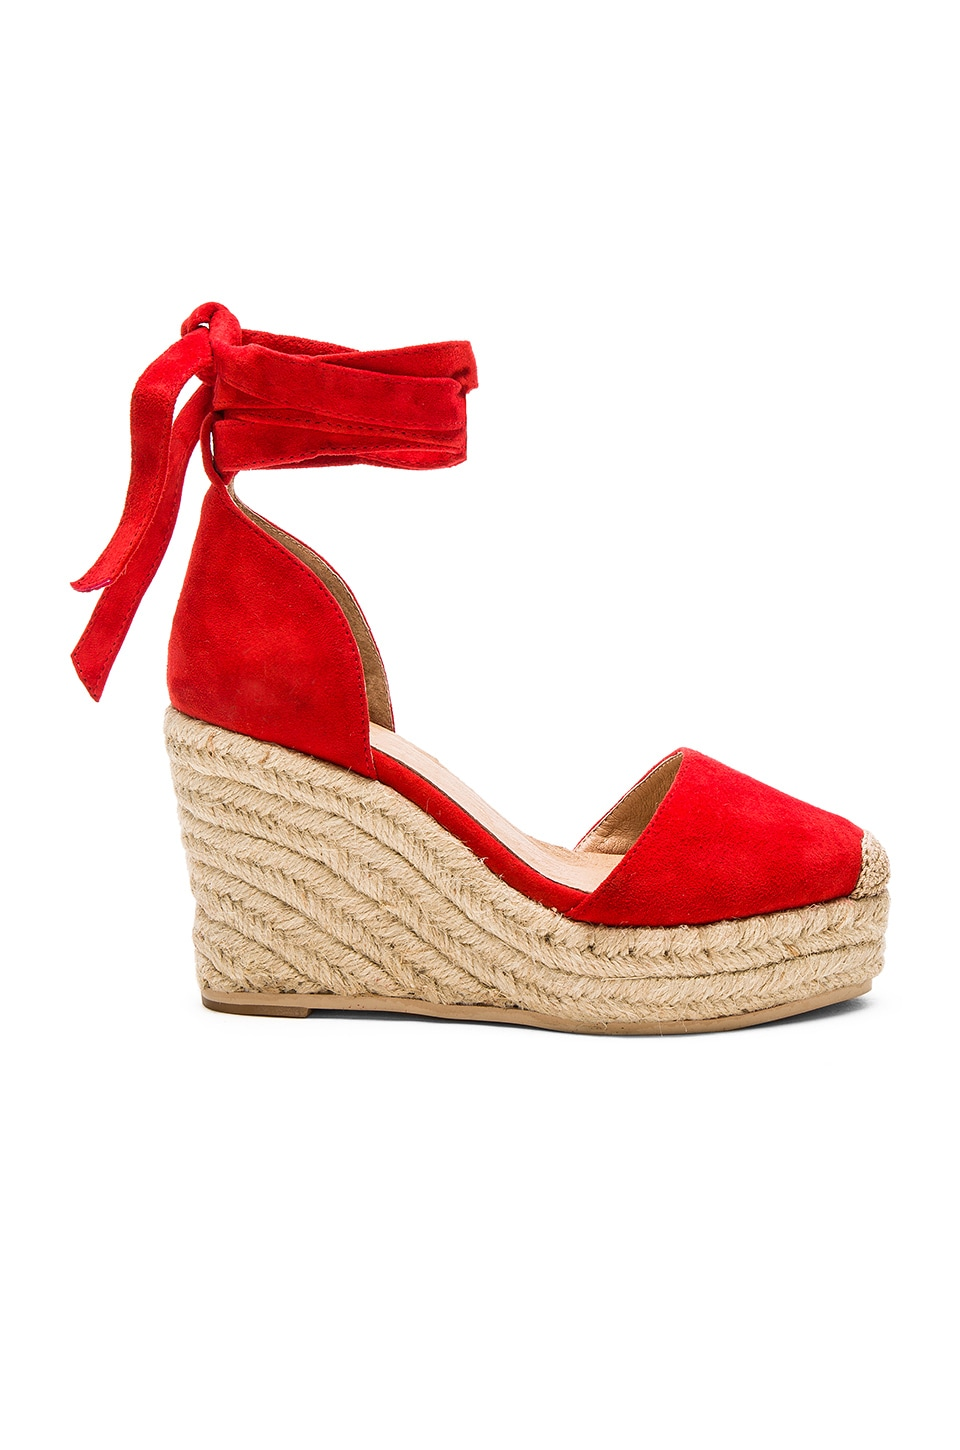 RAYE Dahlia Espadrille Wedge in Ruby